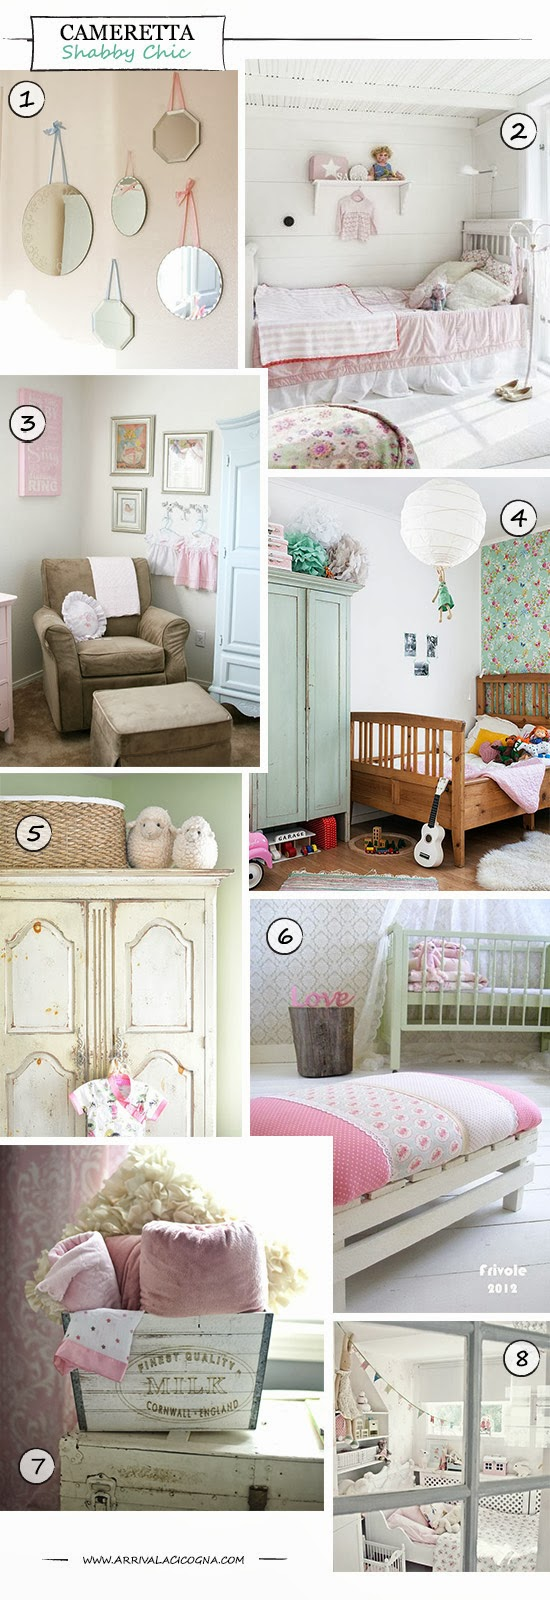 Camerette per bambini stile shabby chic idee in stile shabby chic provenzale e country per - Camerette stile country ...